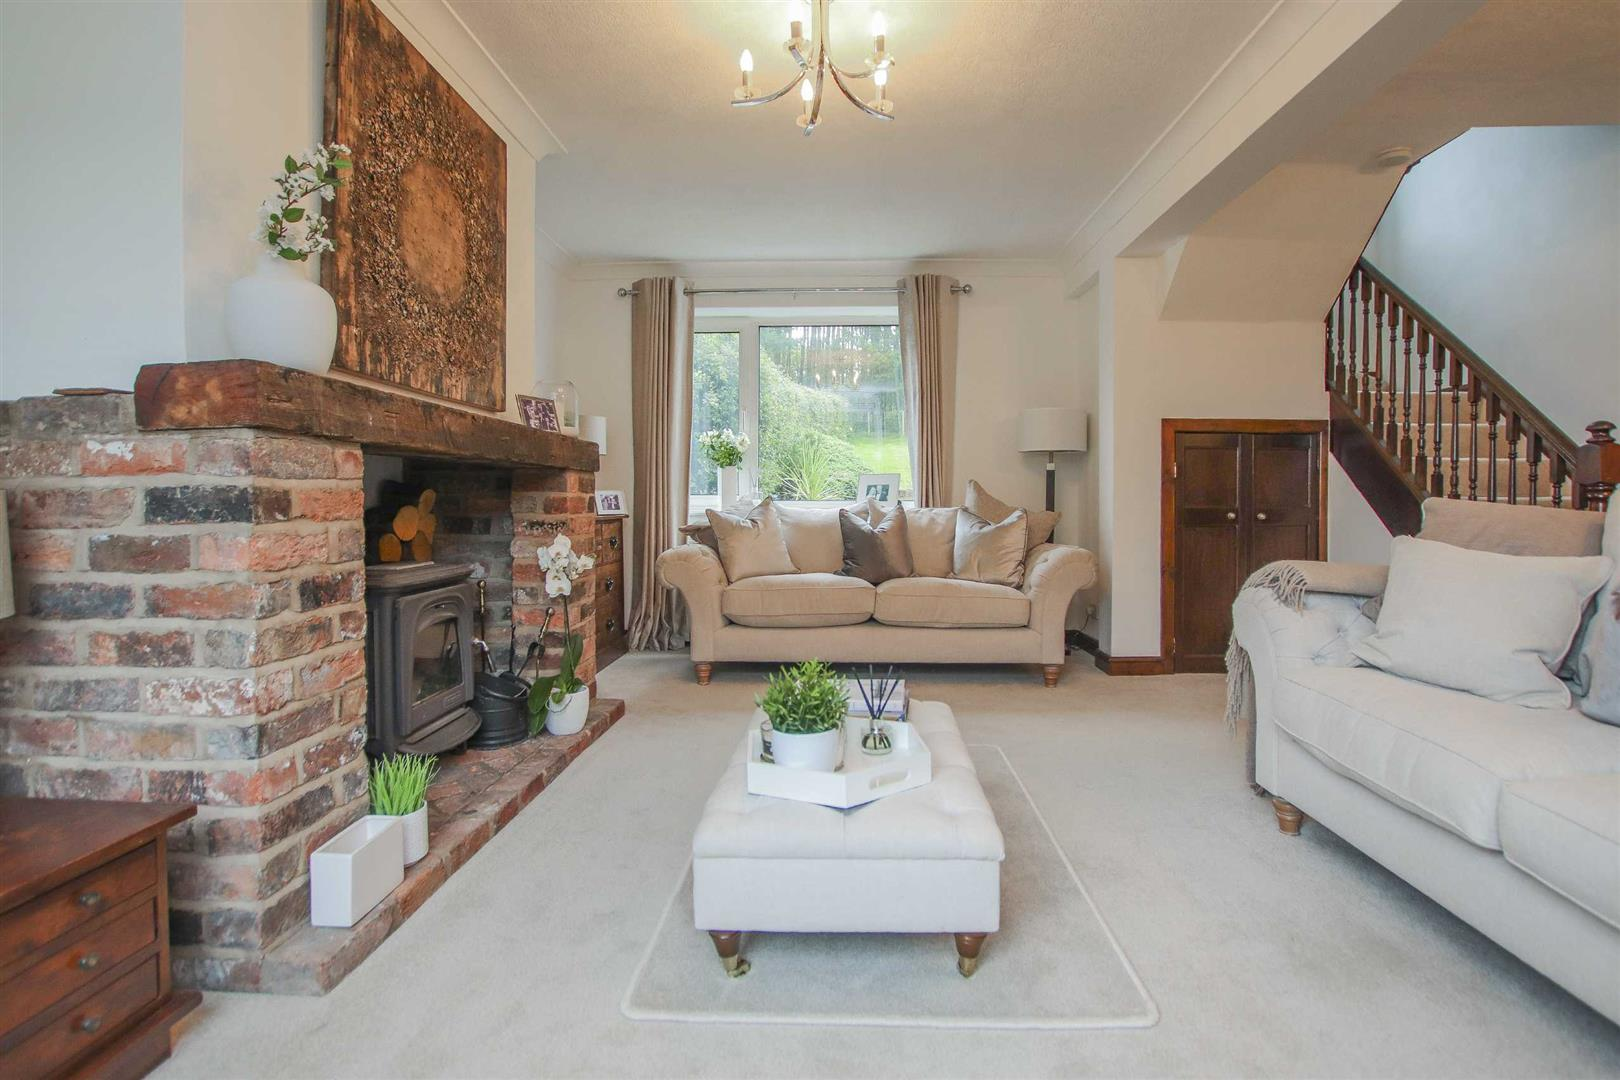 4 Bedroom Semi Detached Cottage For Sale - Image 31